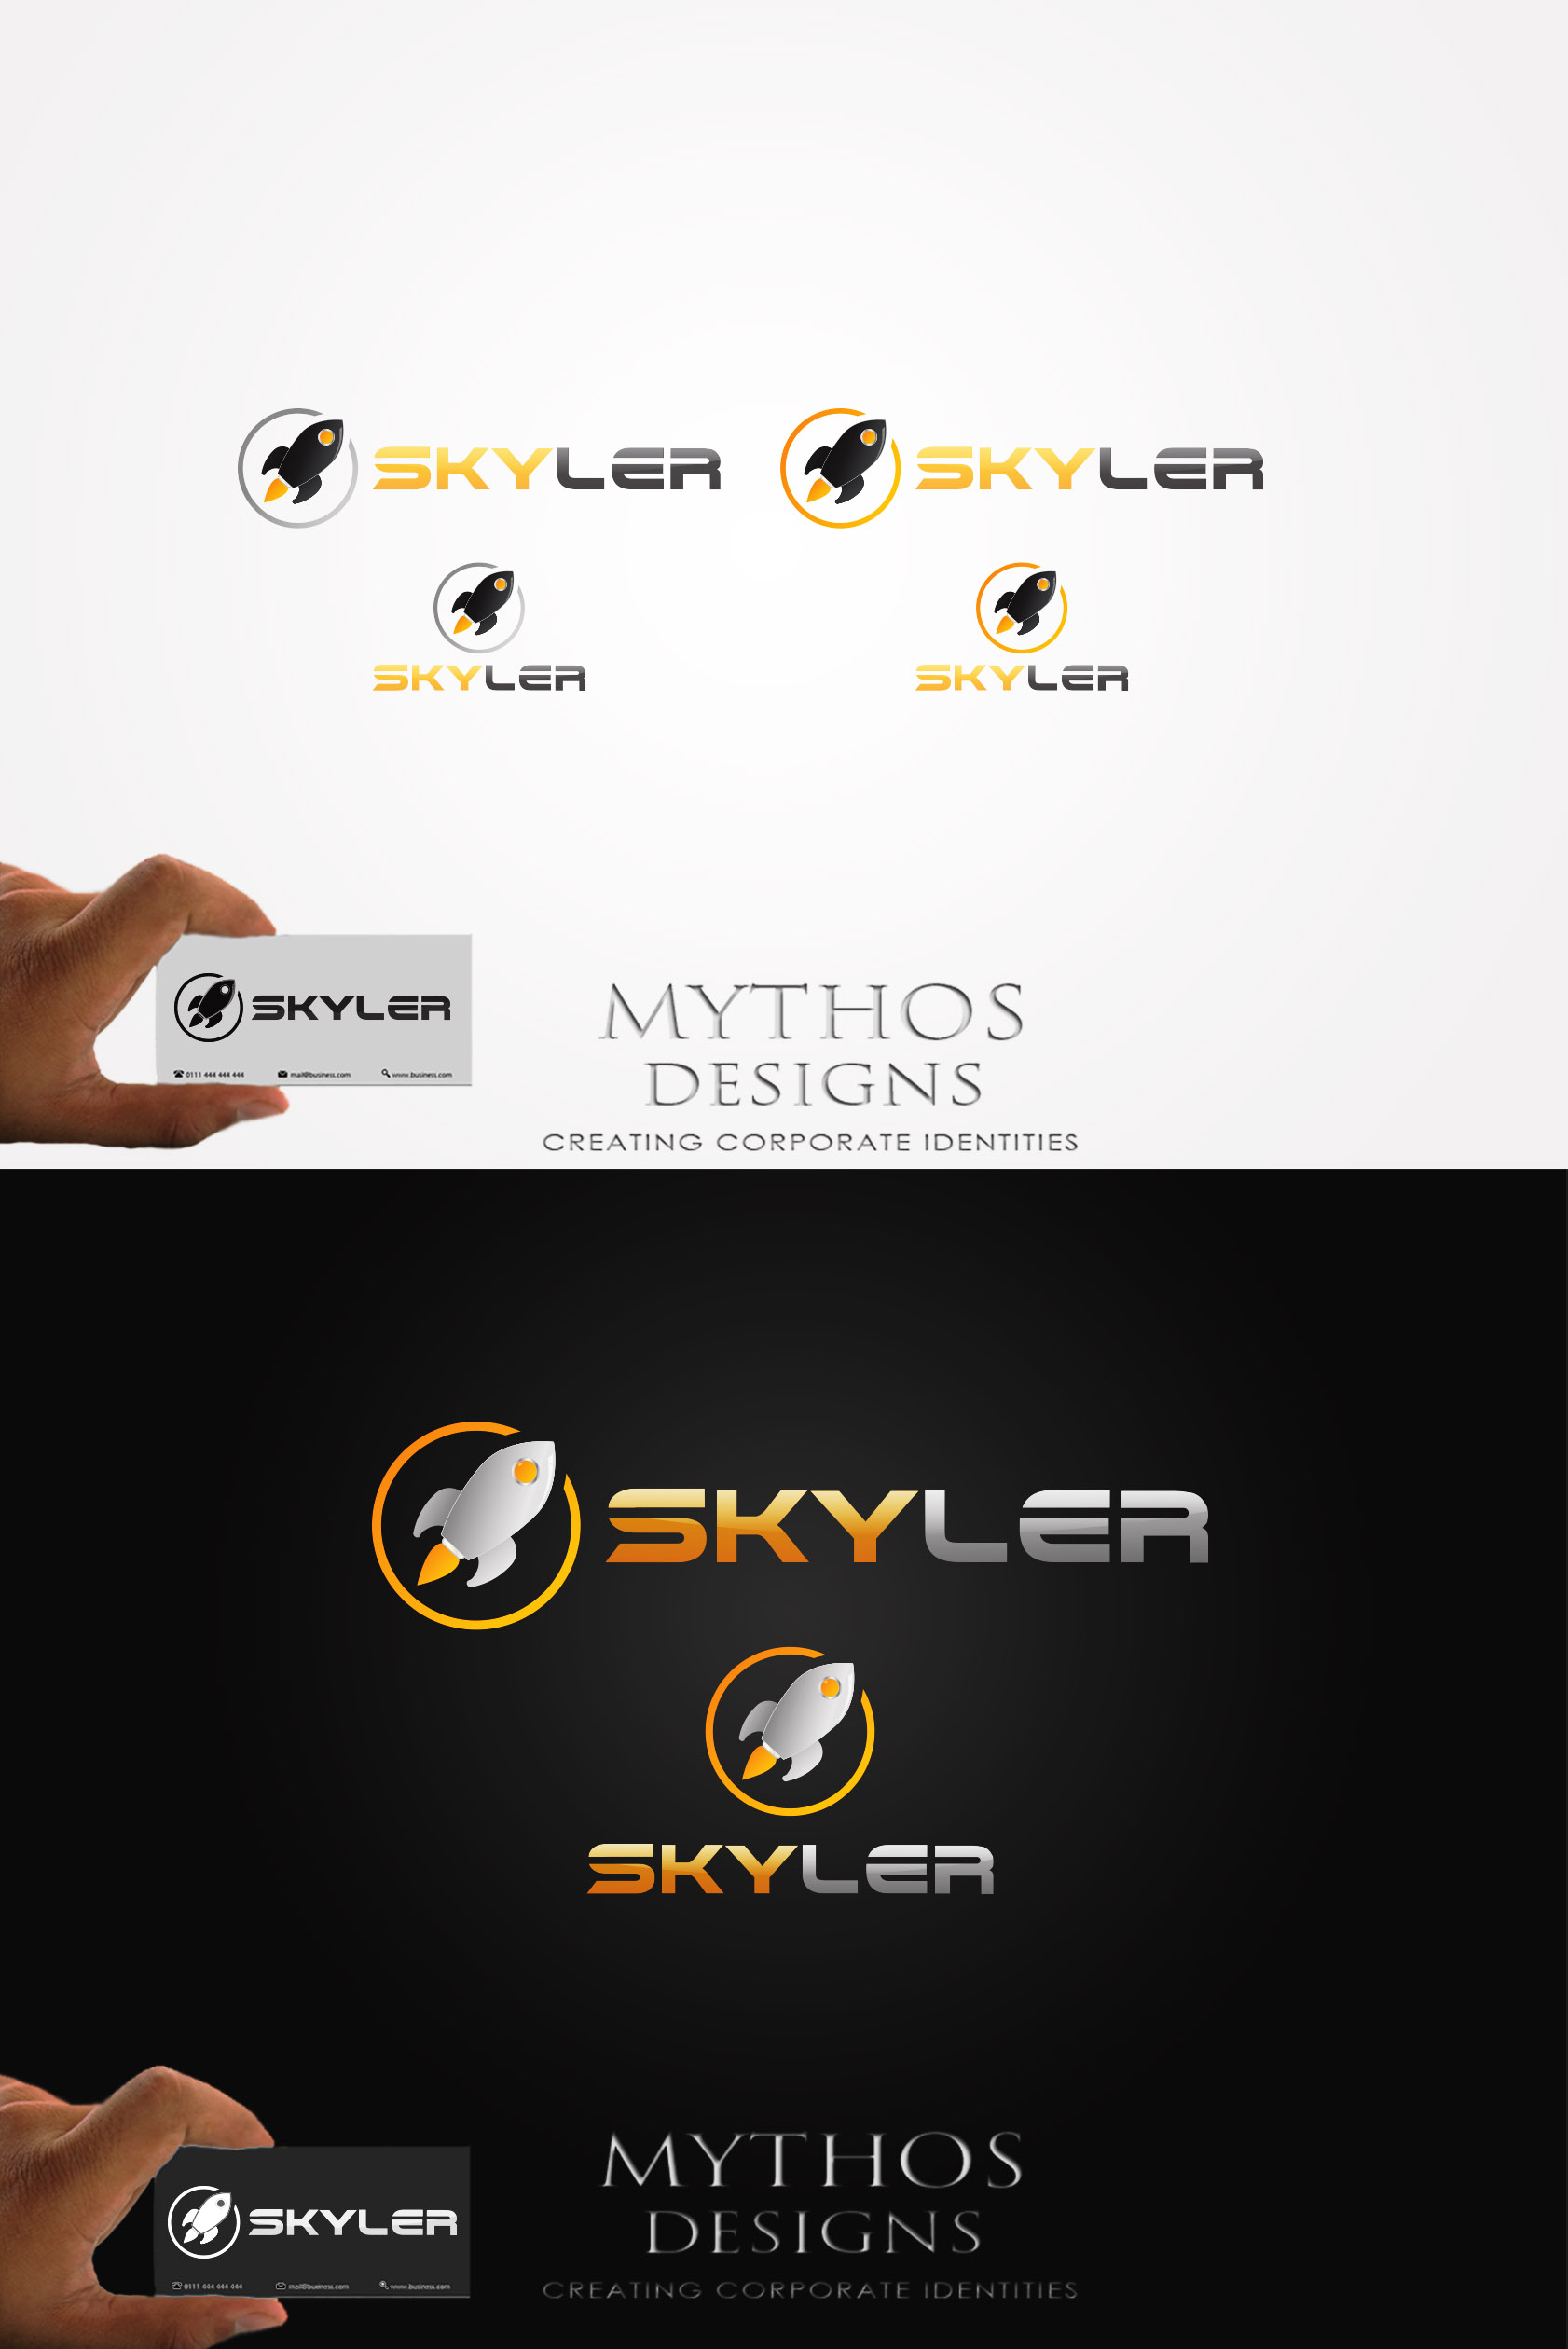 Logo Design by Mythos Designs - Entry No. 243 in the Logo Design Contest Artistic Logo Design for Skyler.Asia.